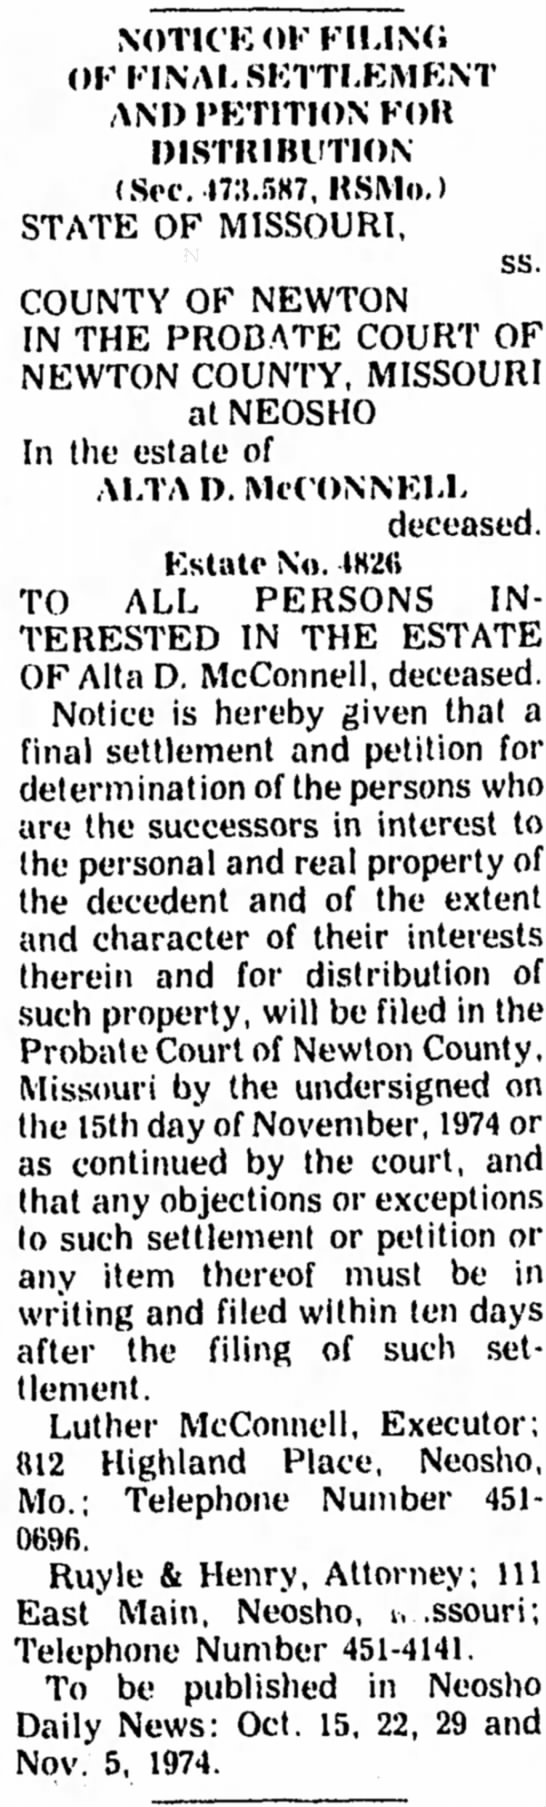 may be a repeat - NOTICE OF FILING OF FINAL SETTLEMENT AND...